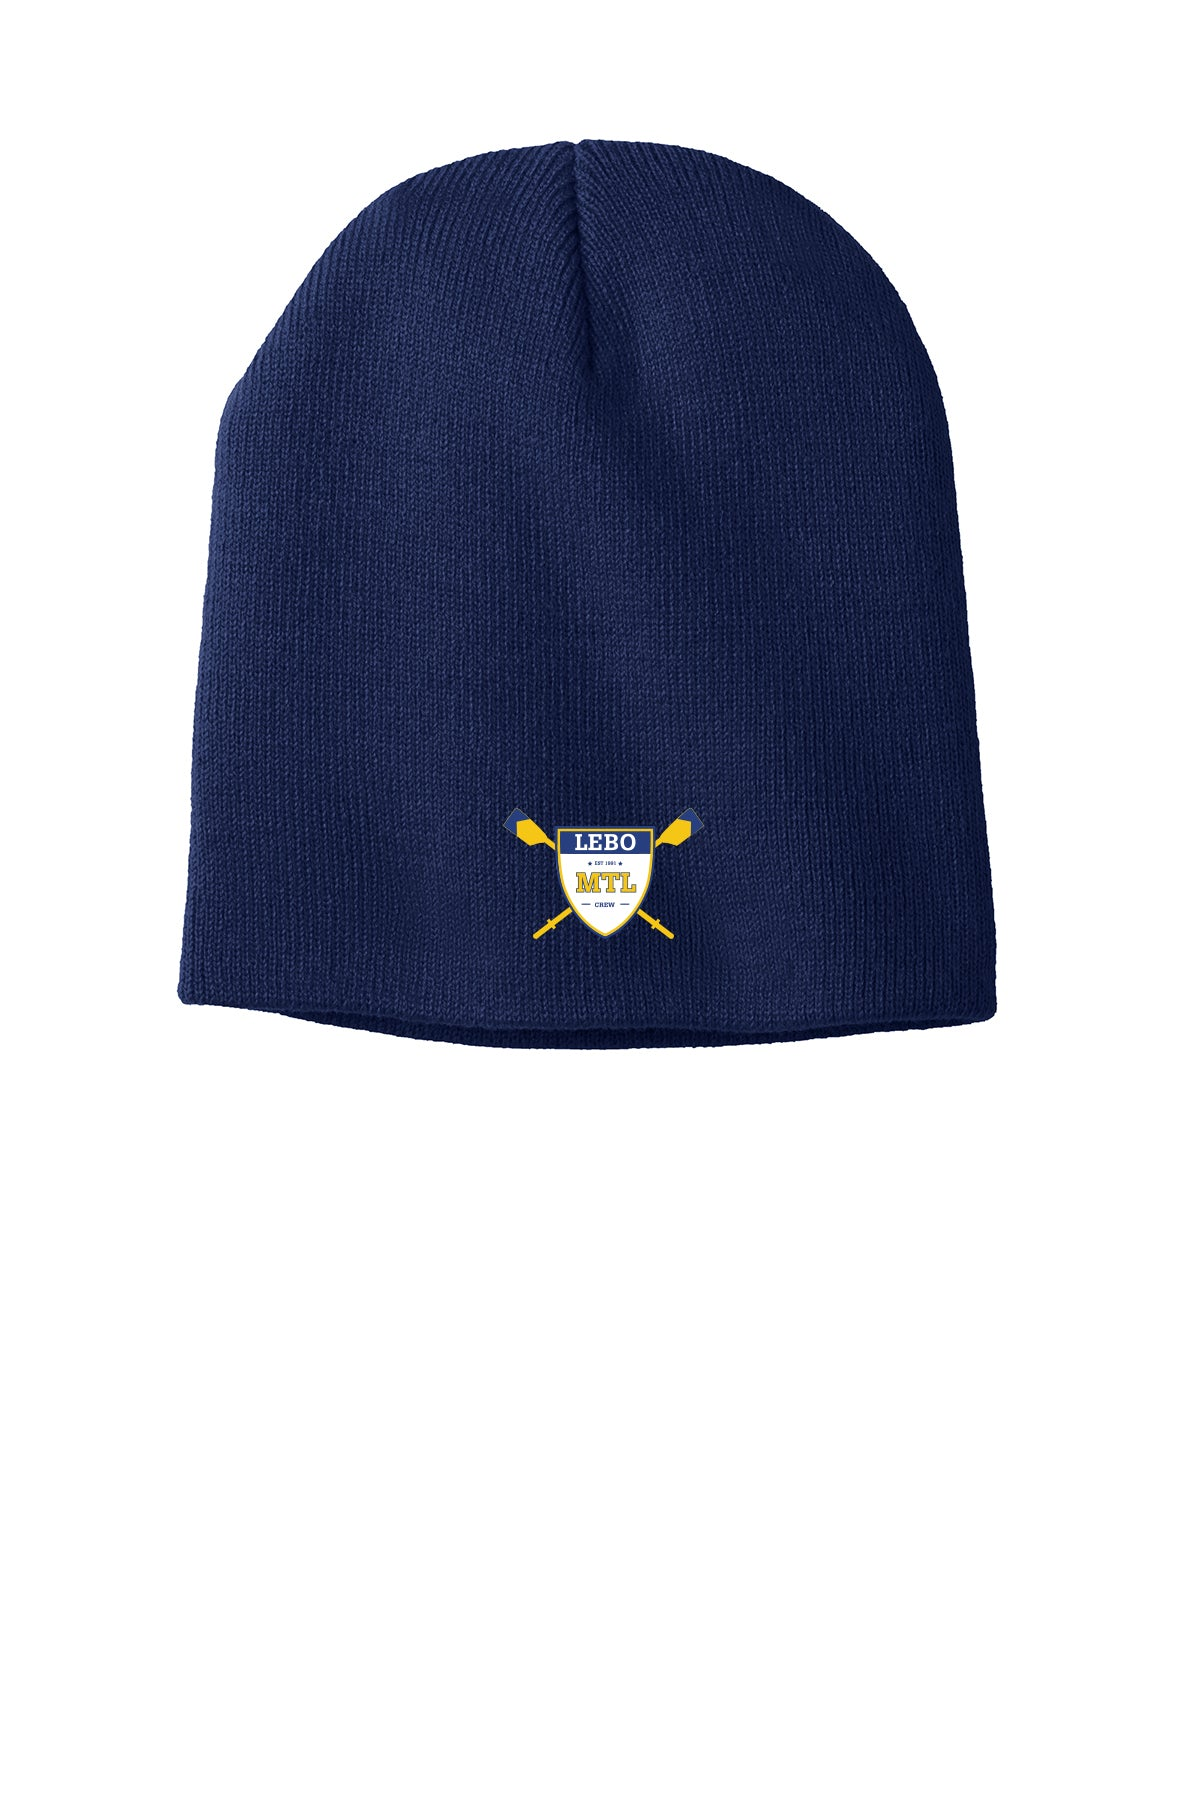 Straight Knit MT Lebanon Rowing Beanie